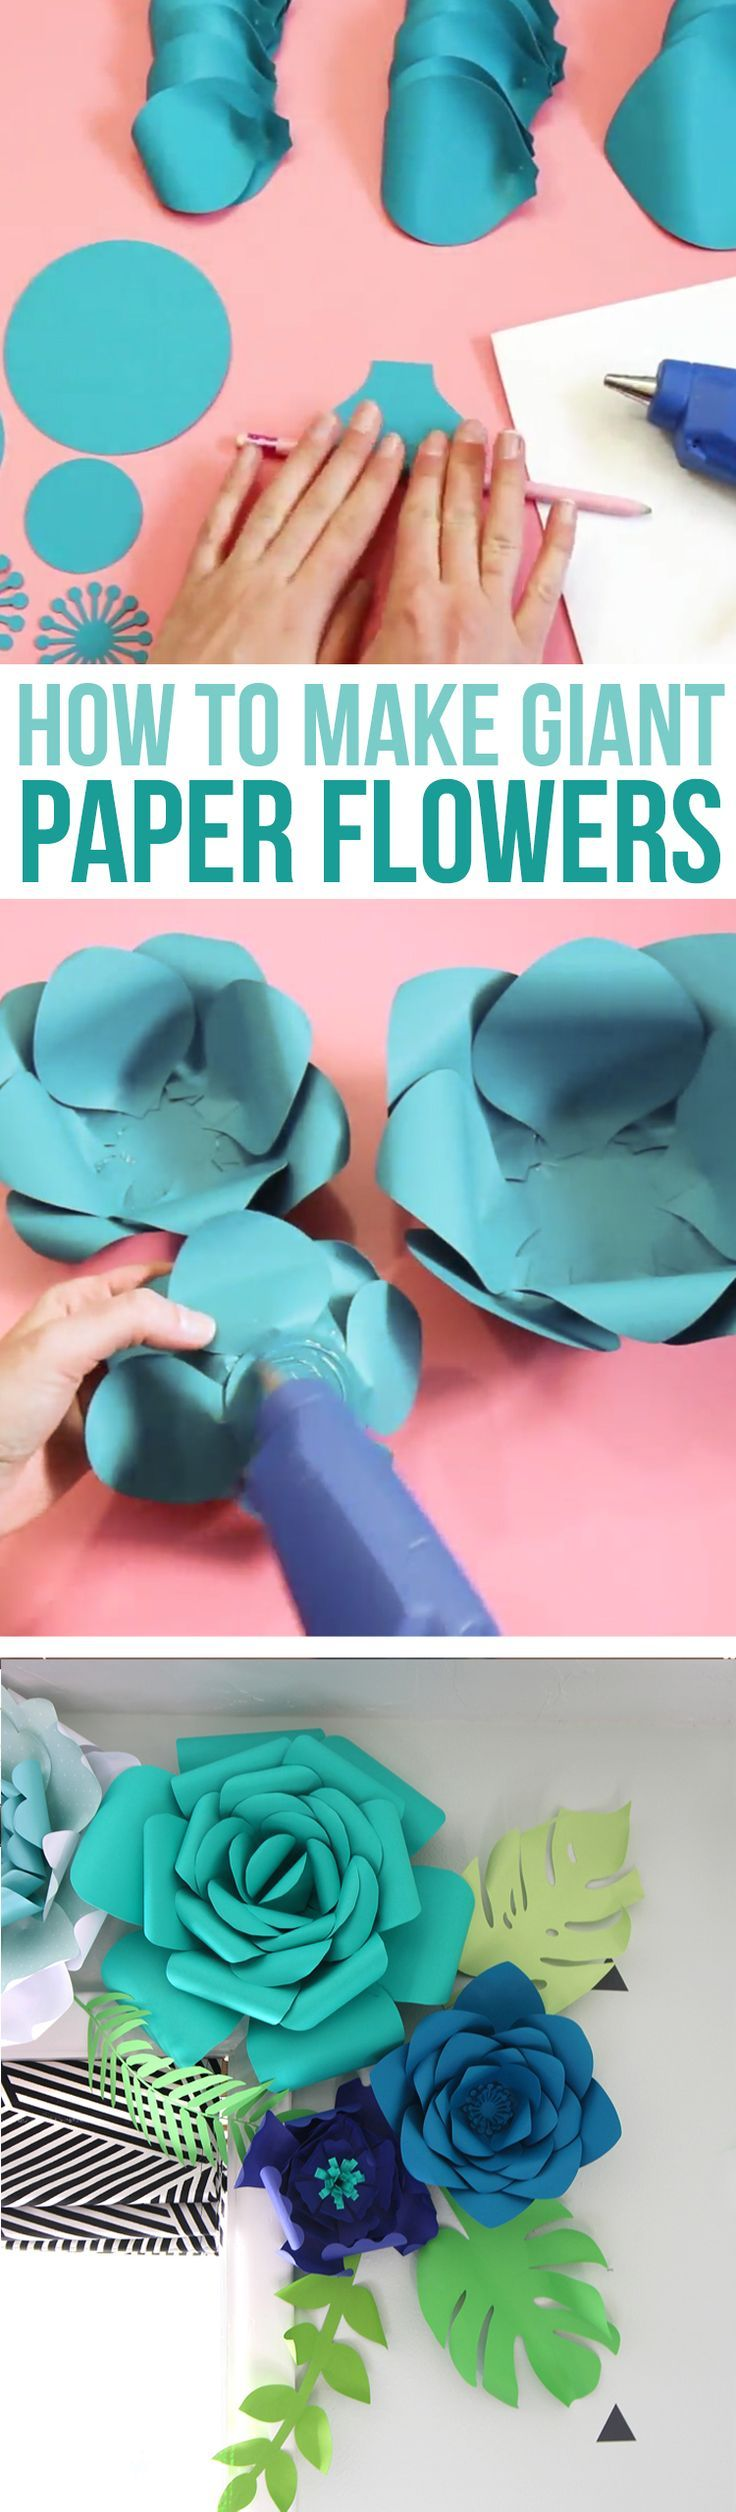 How to make giant paper flowers for DIY wedding decor, party backdrops or to decorate a nursery. Step by step instructions. All you need is cardstock and hot glue! 3D paper crafts | 3D Paper Flowers | Giant Paper Flowers